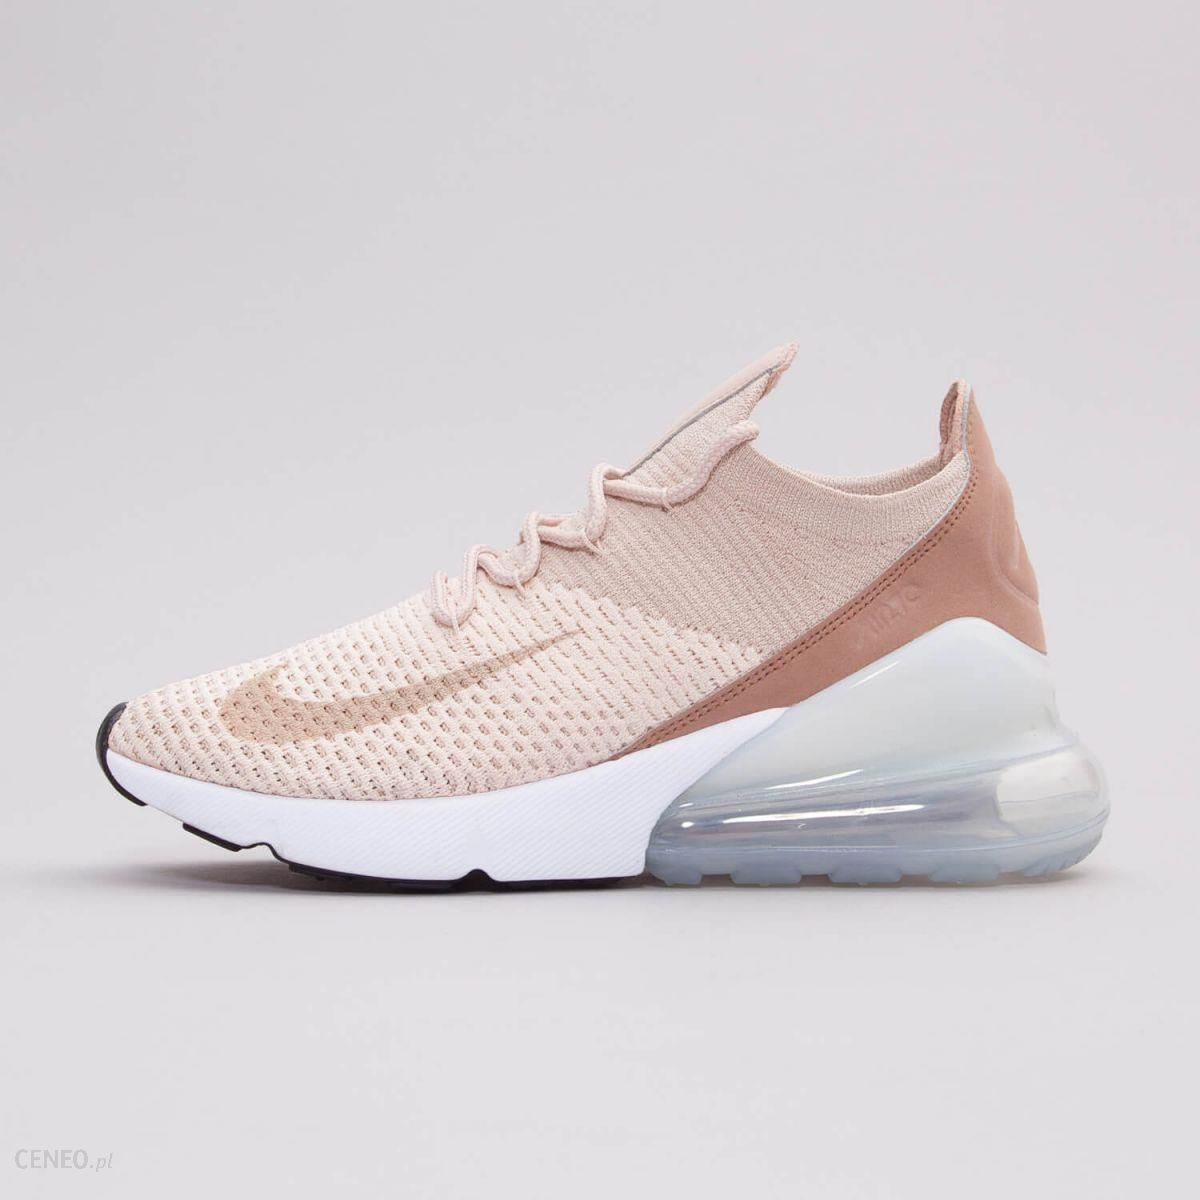 newest collection 8900c 68d3b Nike WMNS AIR MAX 270 FLYKNIT AH6803-801 - Ceny i opinie - Ceneo.pl